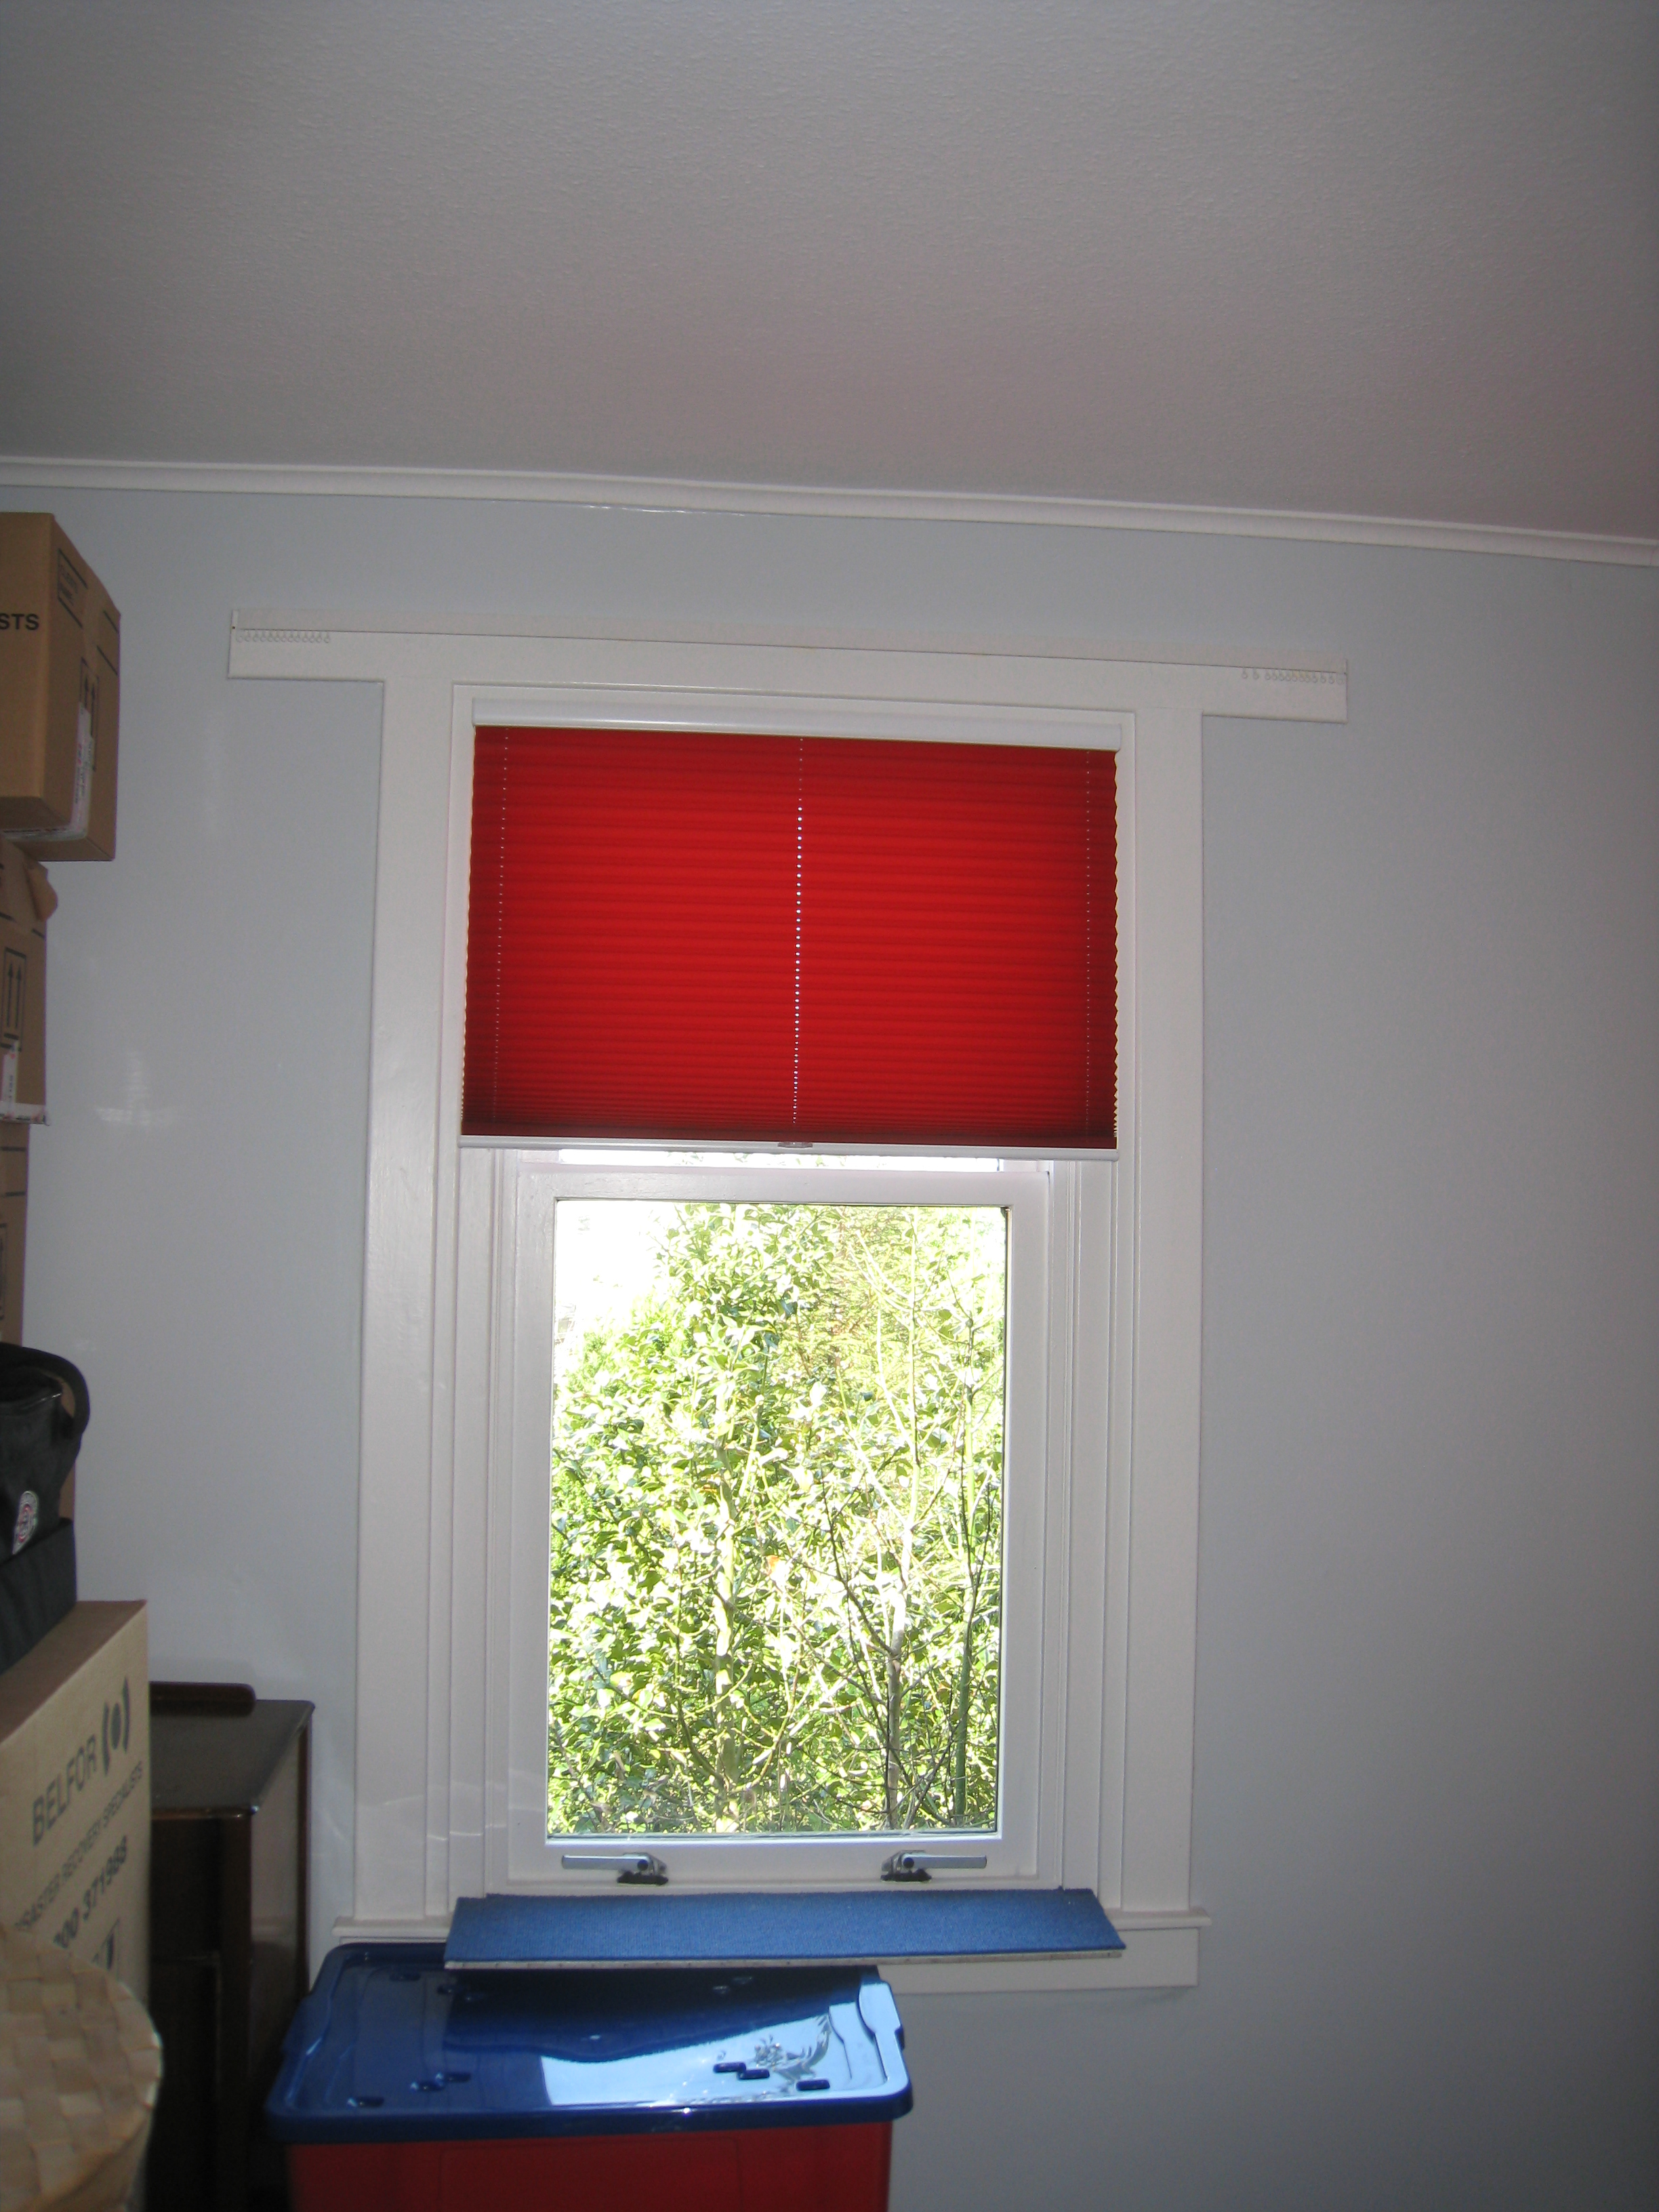 on home designing southcoates myhomedesign hull ideas traditional with contemporary win vertical bl lane best about interior blinds window simply tag curtain